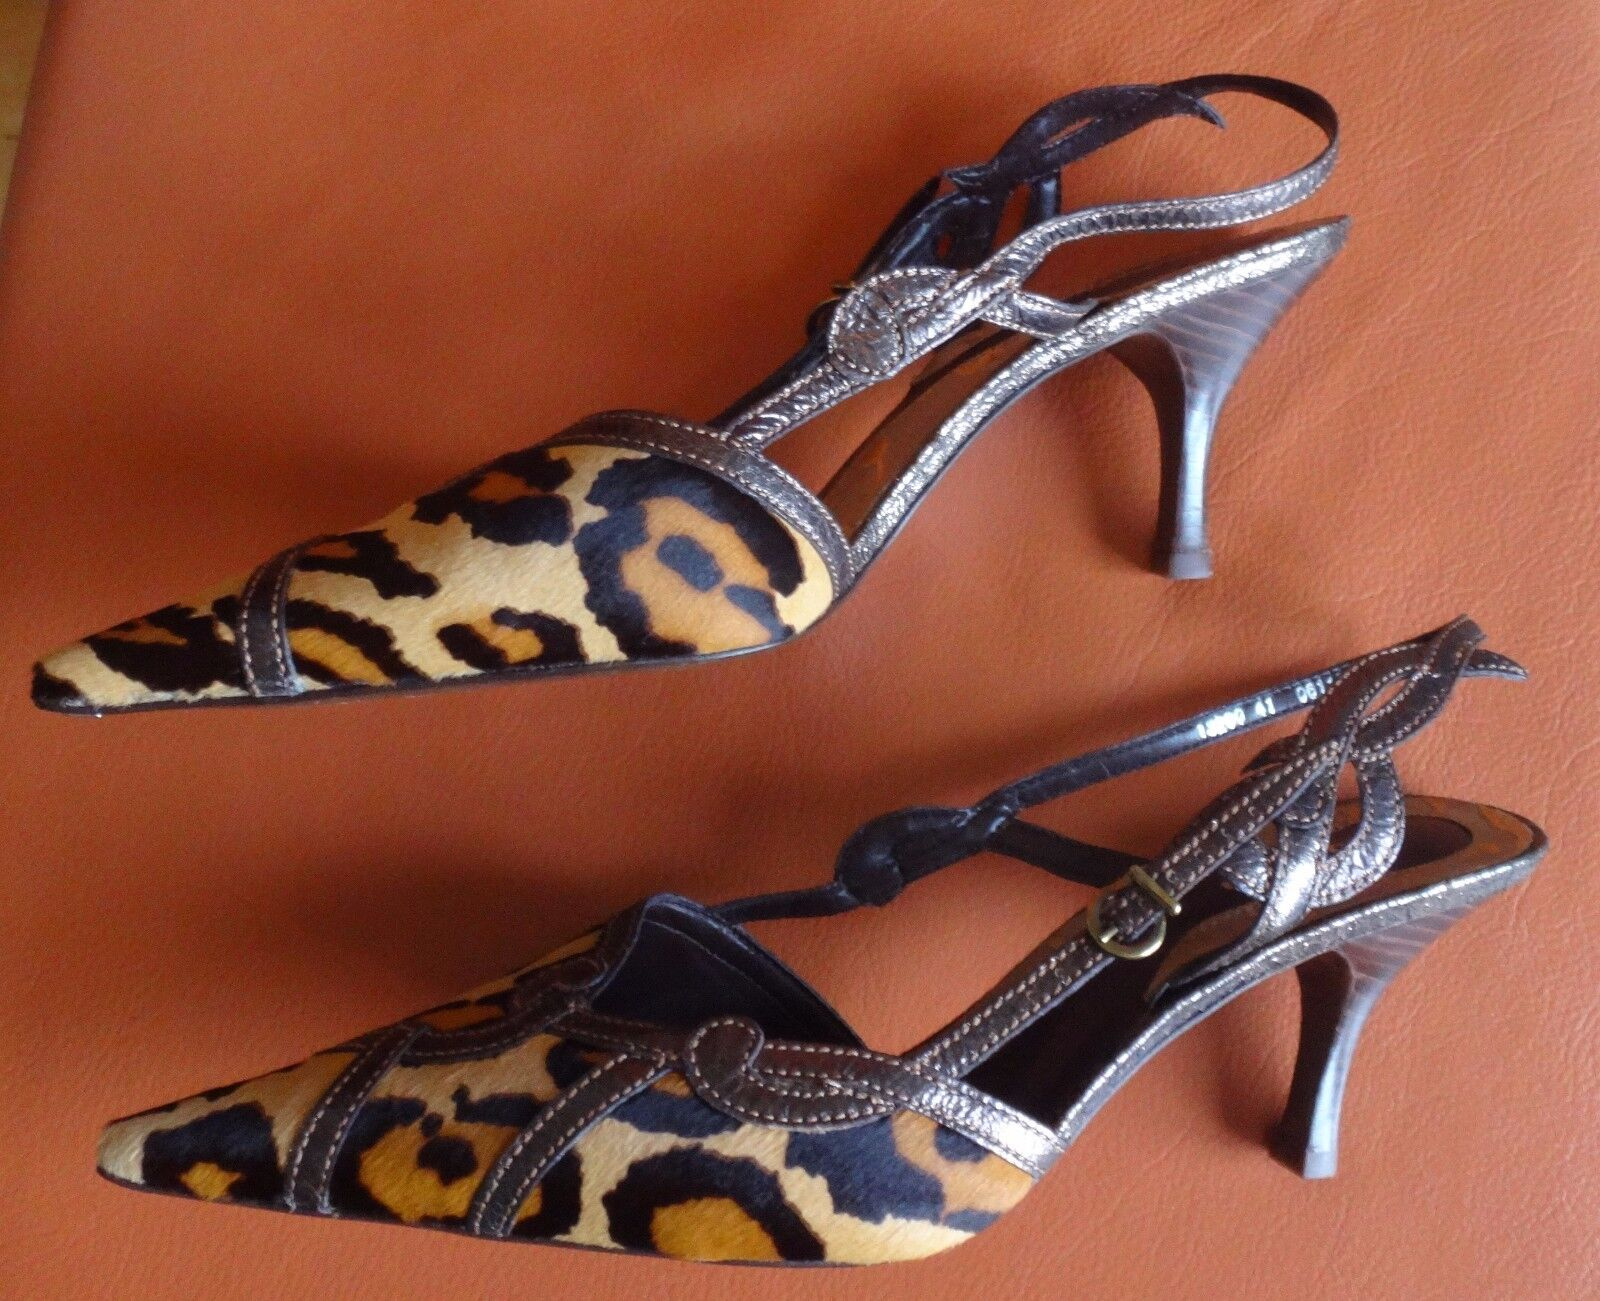 Traumschuh: Claudina Damen Echt in Fell Pumps Leder. Made in Echt Brazil Gr. 41 NEU+OVP 62894a